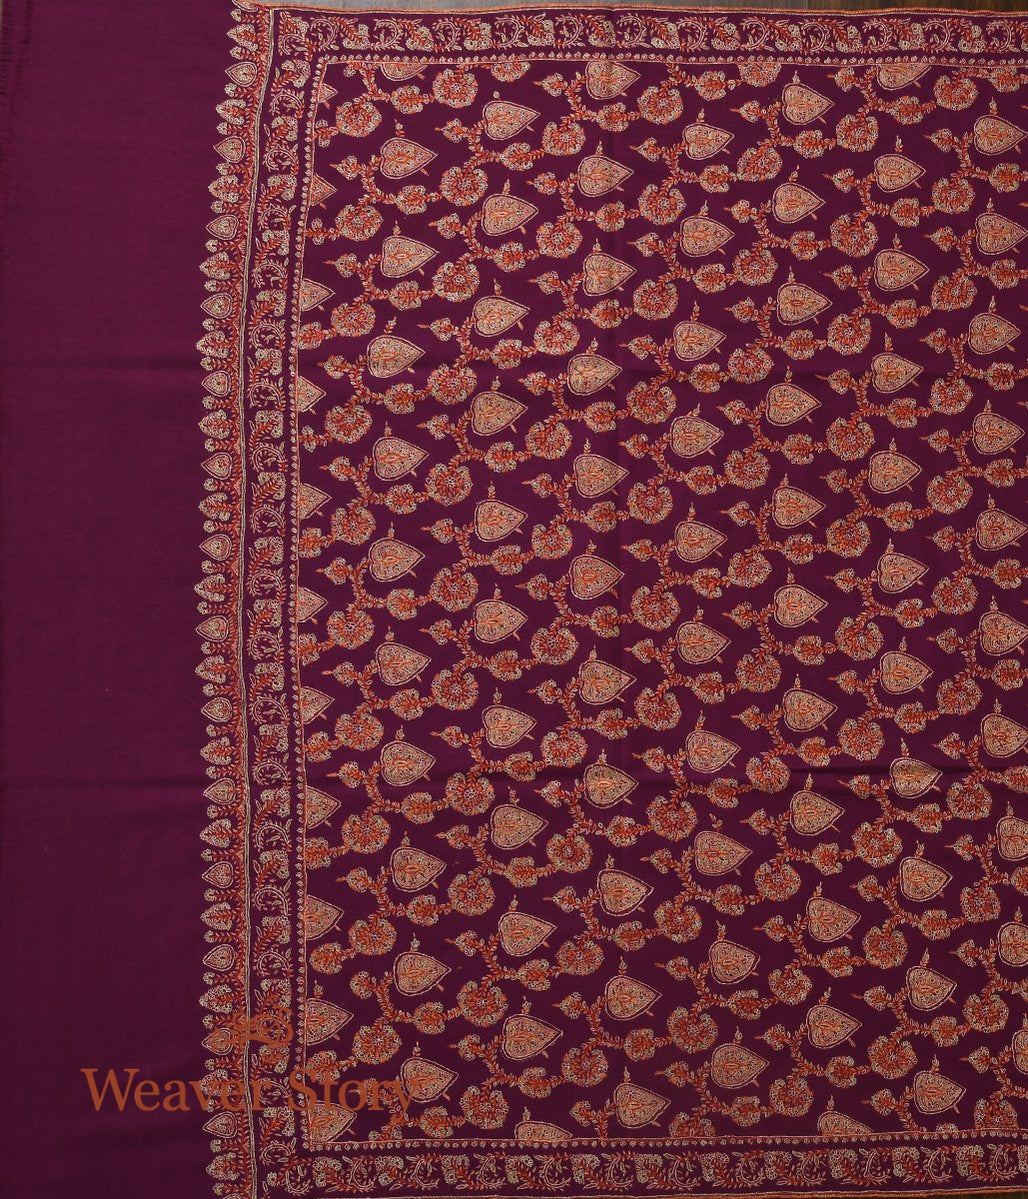 Plum All Over Jamawar Pashmina Shawl with Paan Leaf Motifs